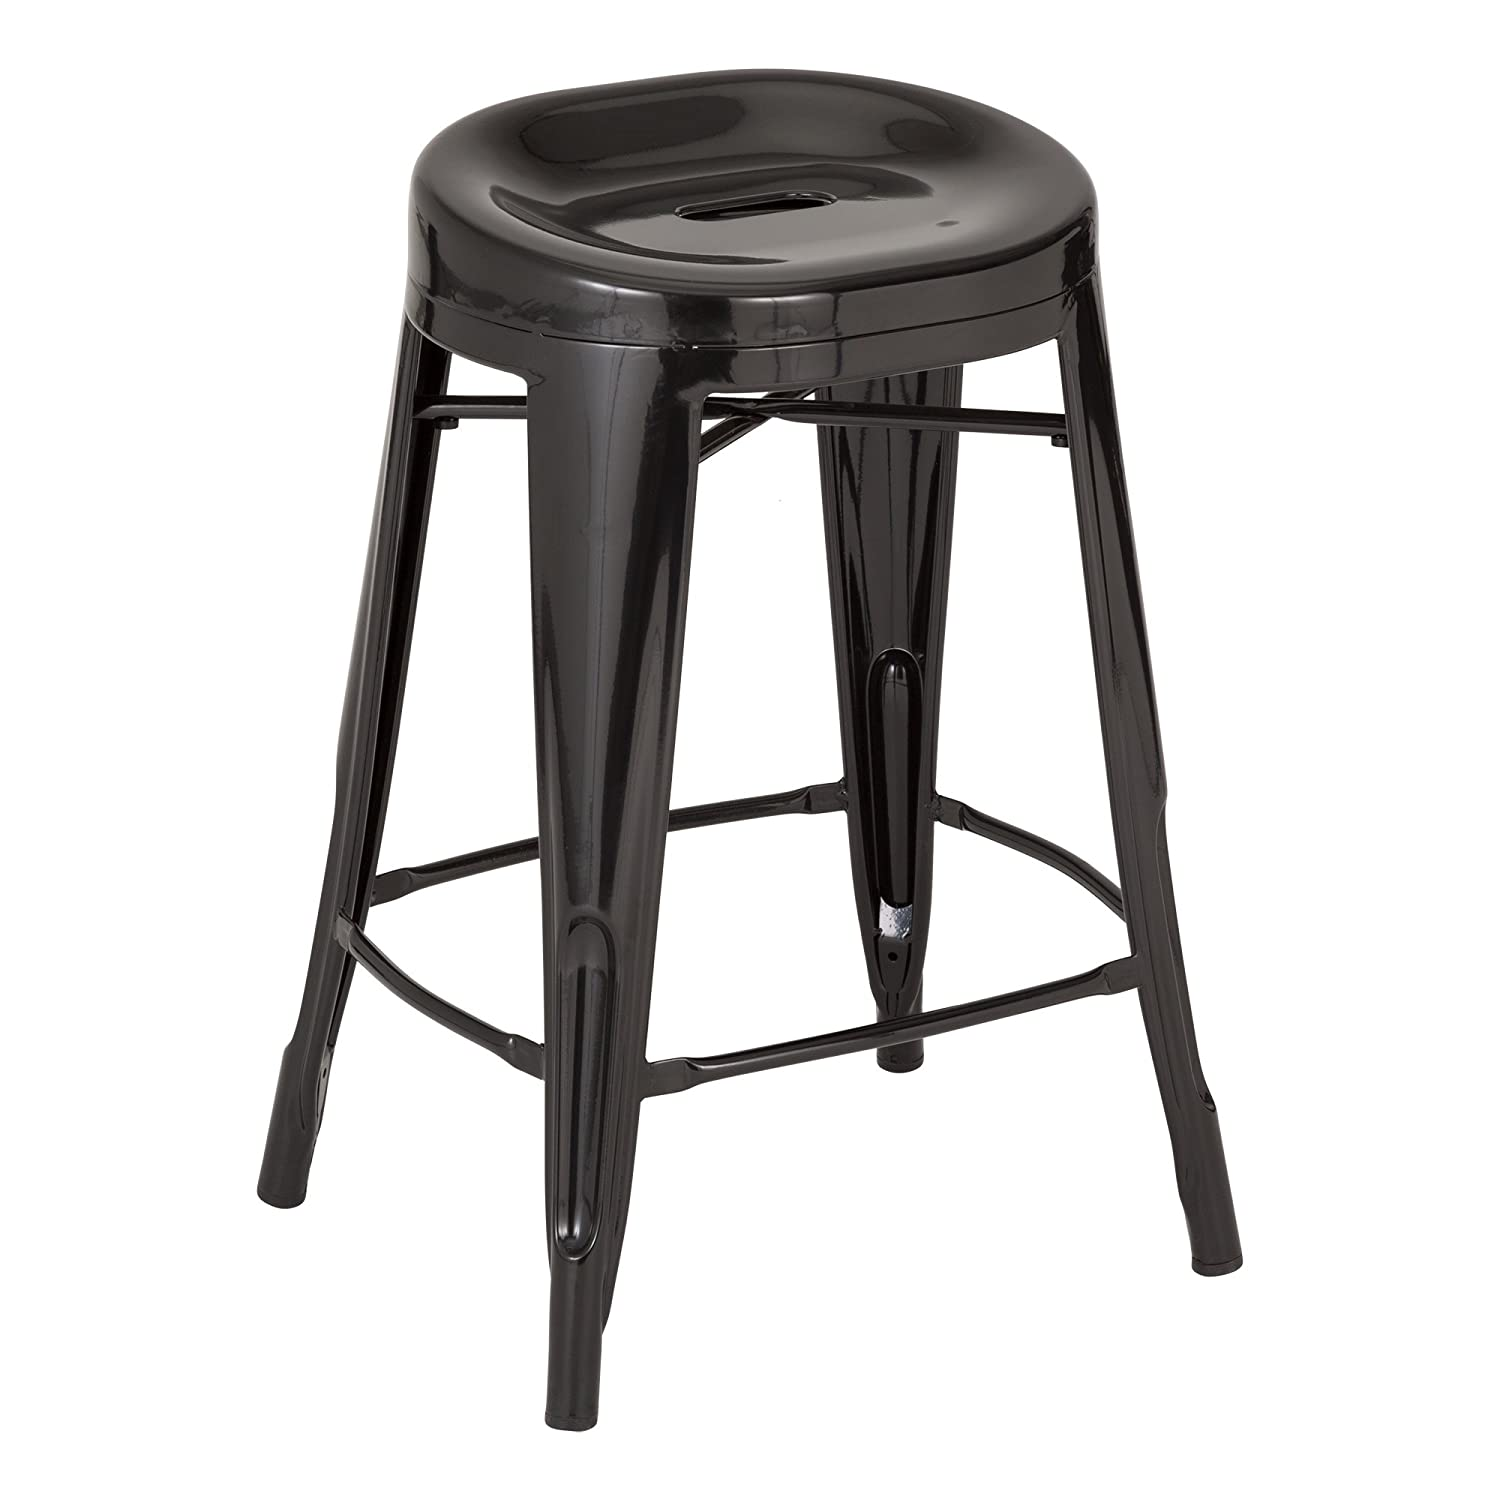 Fat Catalog ALT-XUW-1001SL Modern Industrial Metal Bar Stool w/ Curved Seat, 24 Height, 14.2 Wide, 17.32 Length, Black (Pack of 2) 24 Height 14.2 Wide 17.32 Length ALT-XUW-1001BK